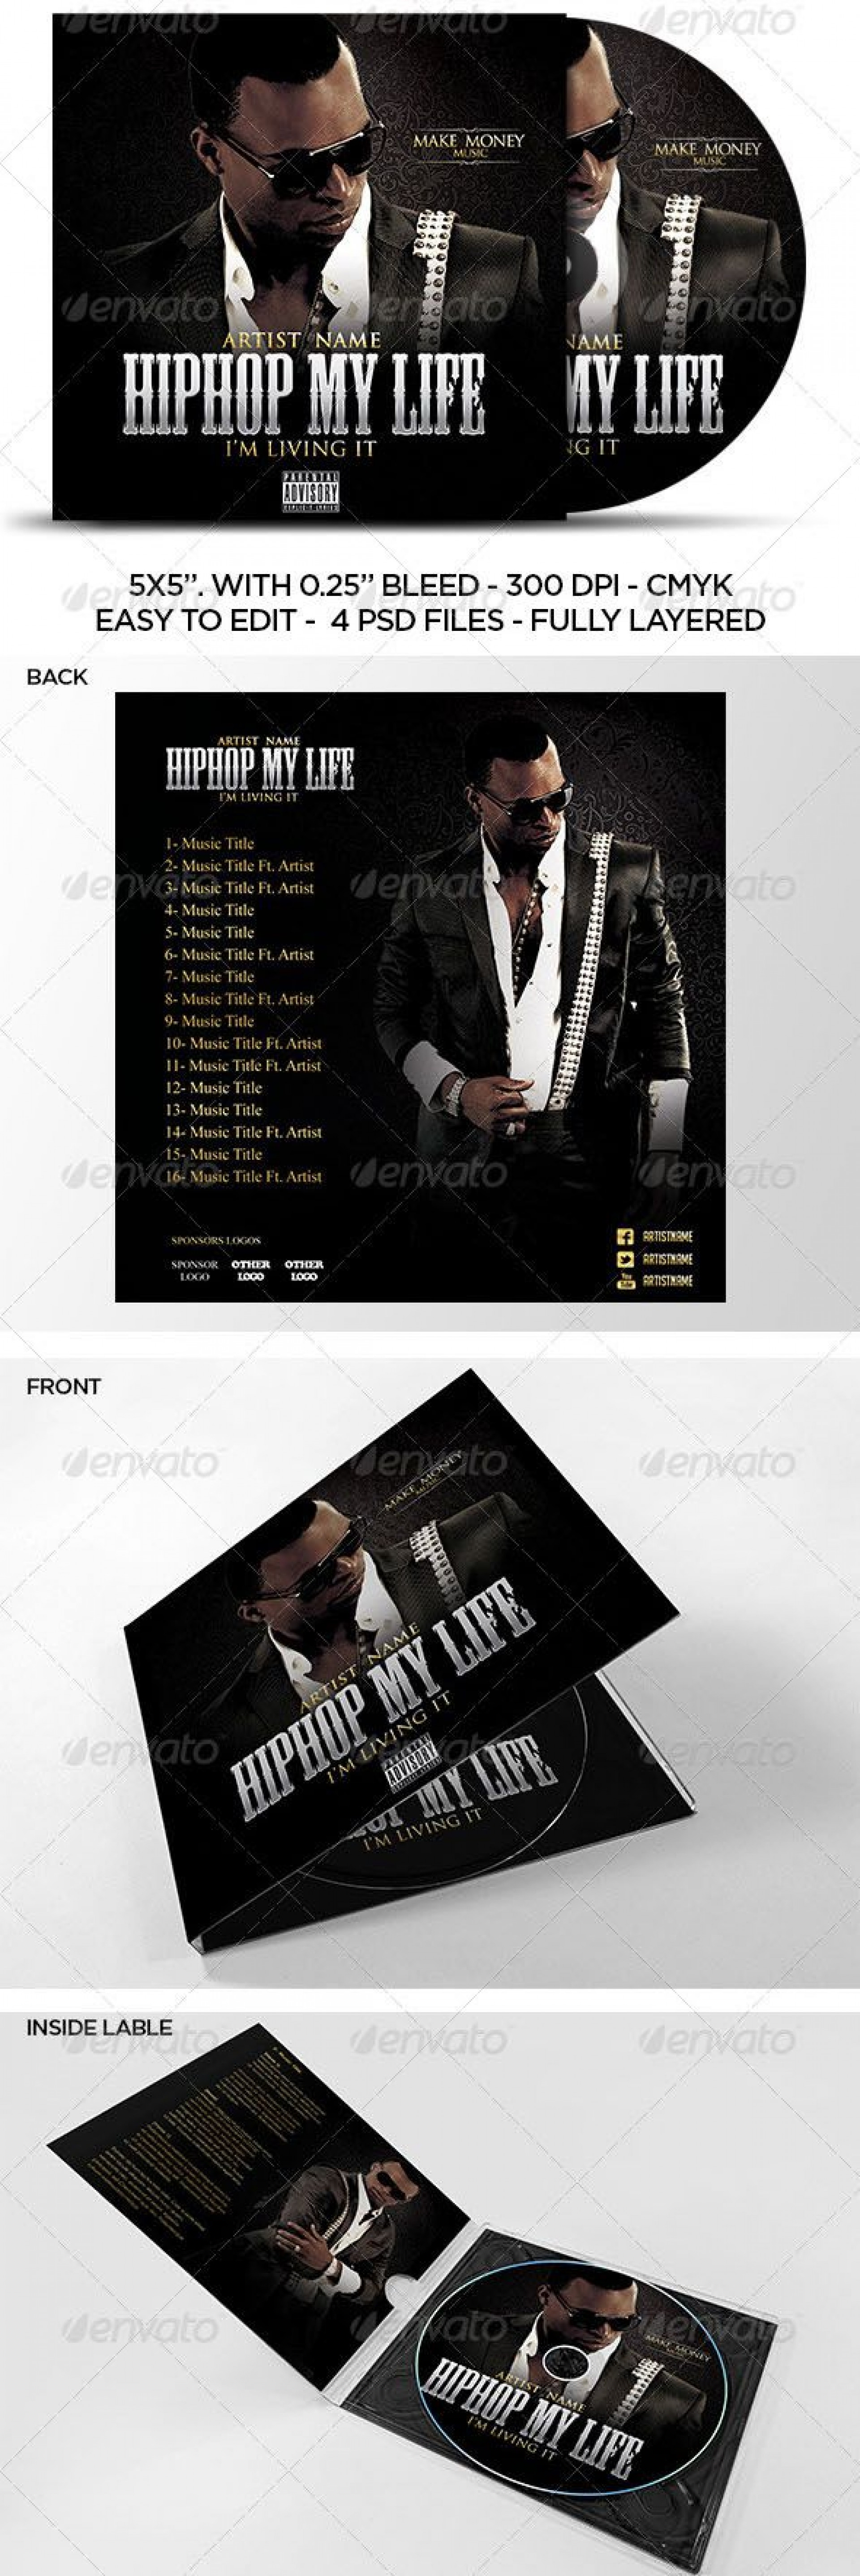 002 Formidable Cd Cover Template Psd Highest Clarity  Sleeve Case Free Download Layout1920